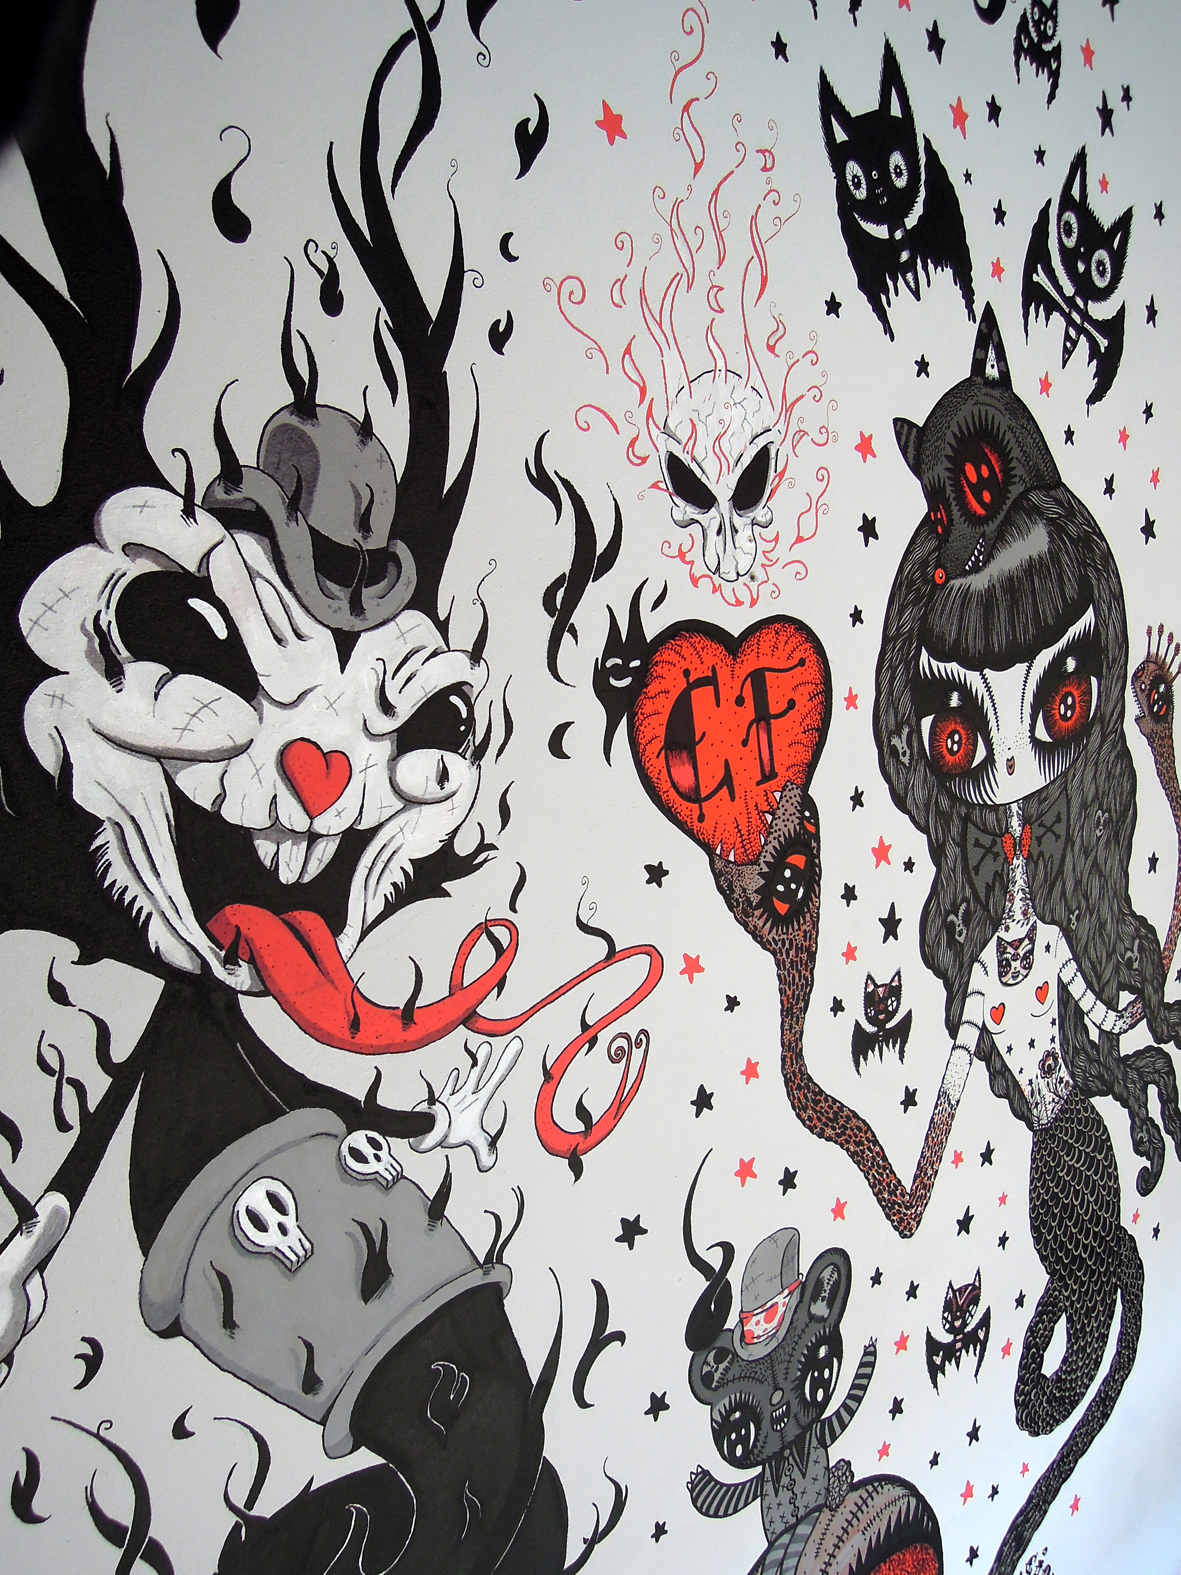 Duo art show with Malojo, at cindy Frey gallery, Courtrai, Belgium